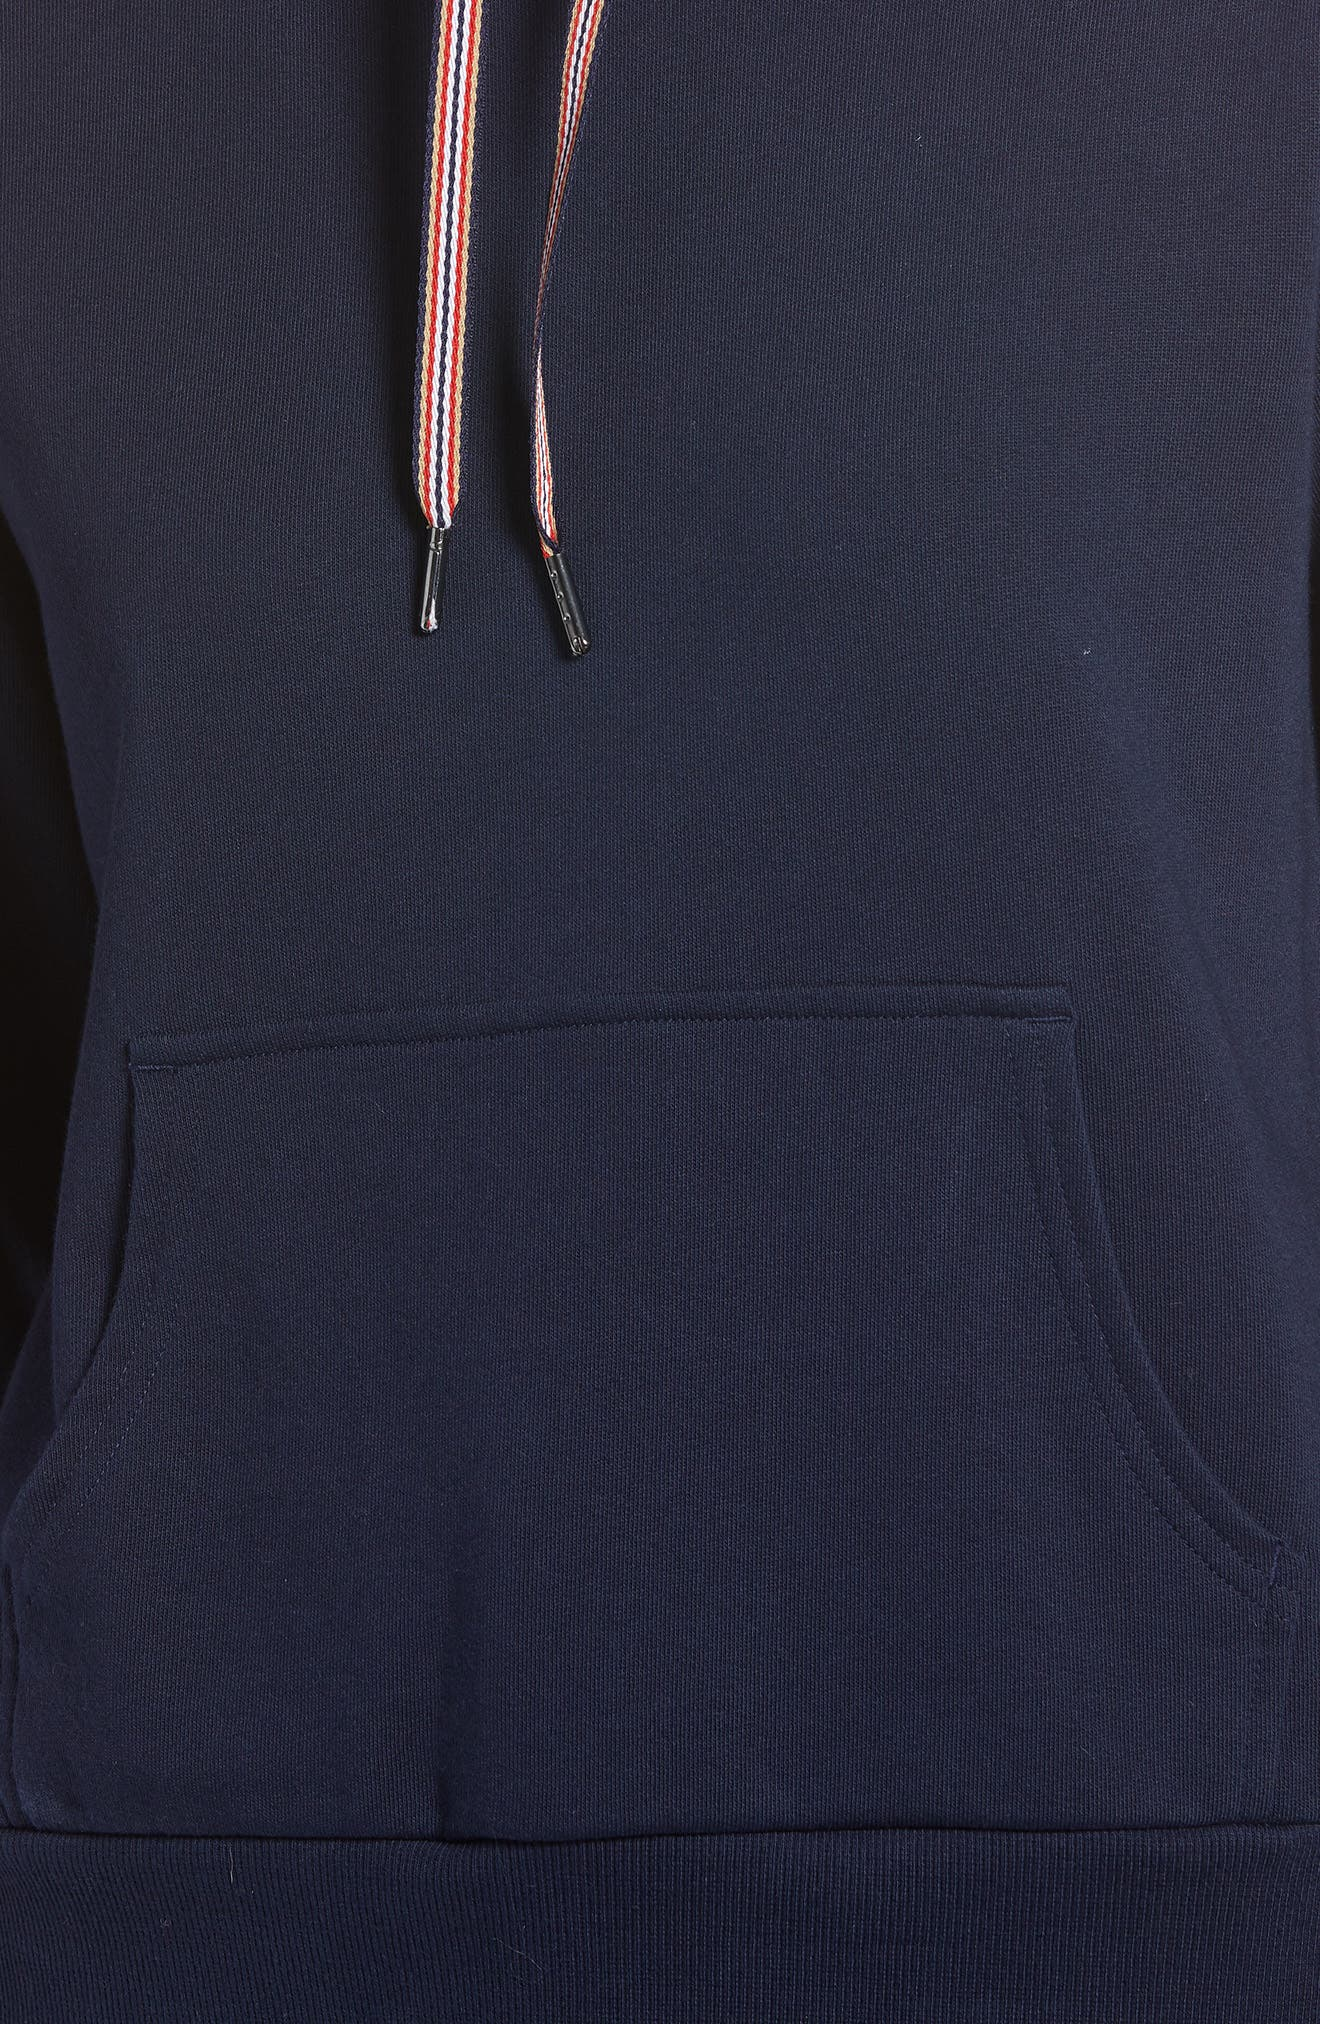 Stretch Cotton Hoodie,                             Alternate thumbnail 5, color,                             410